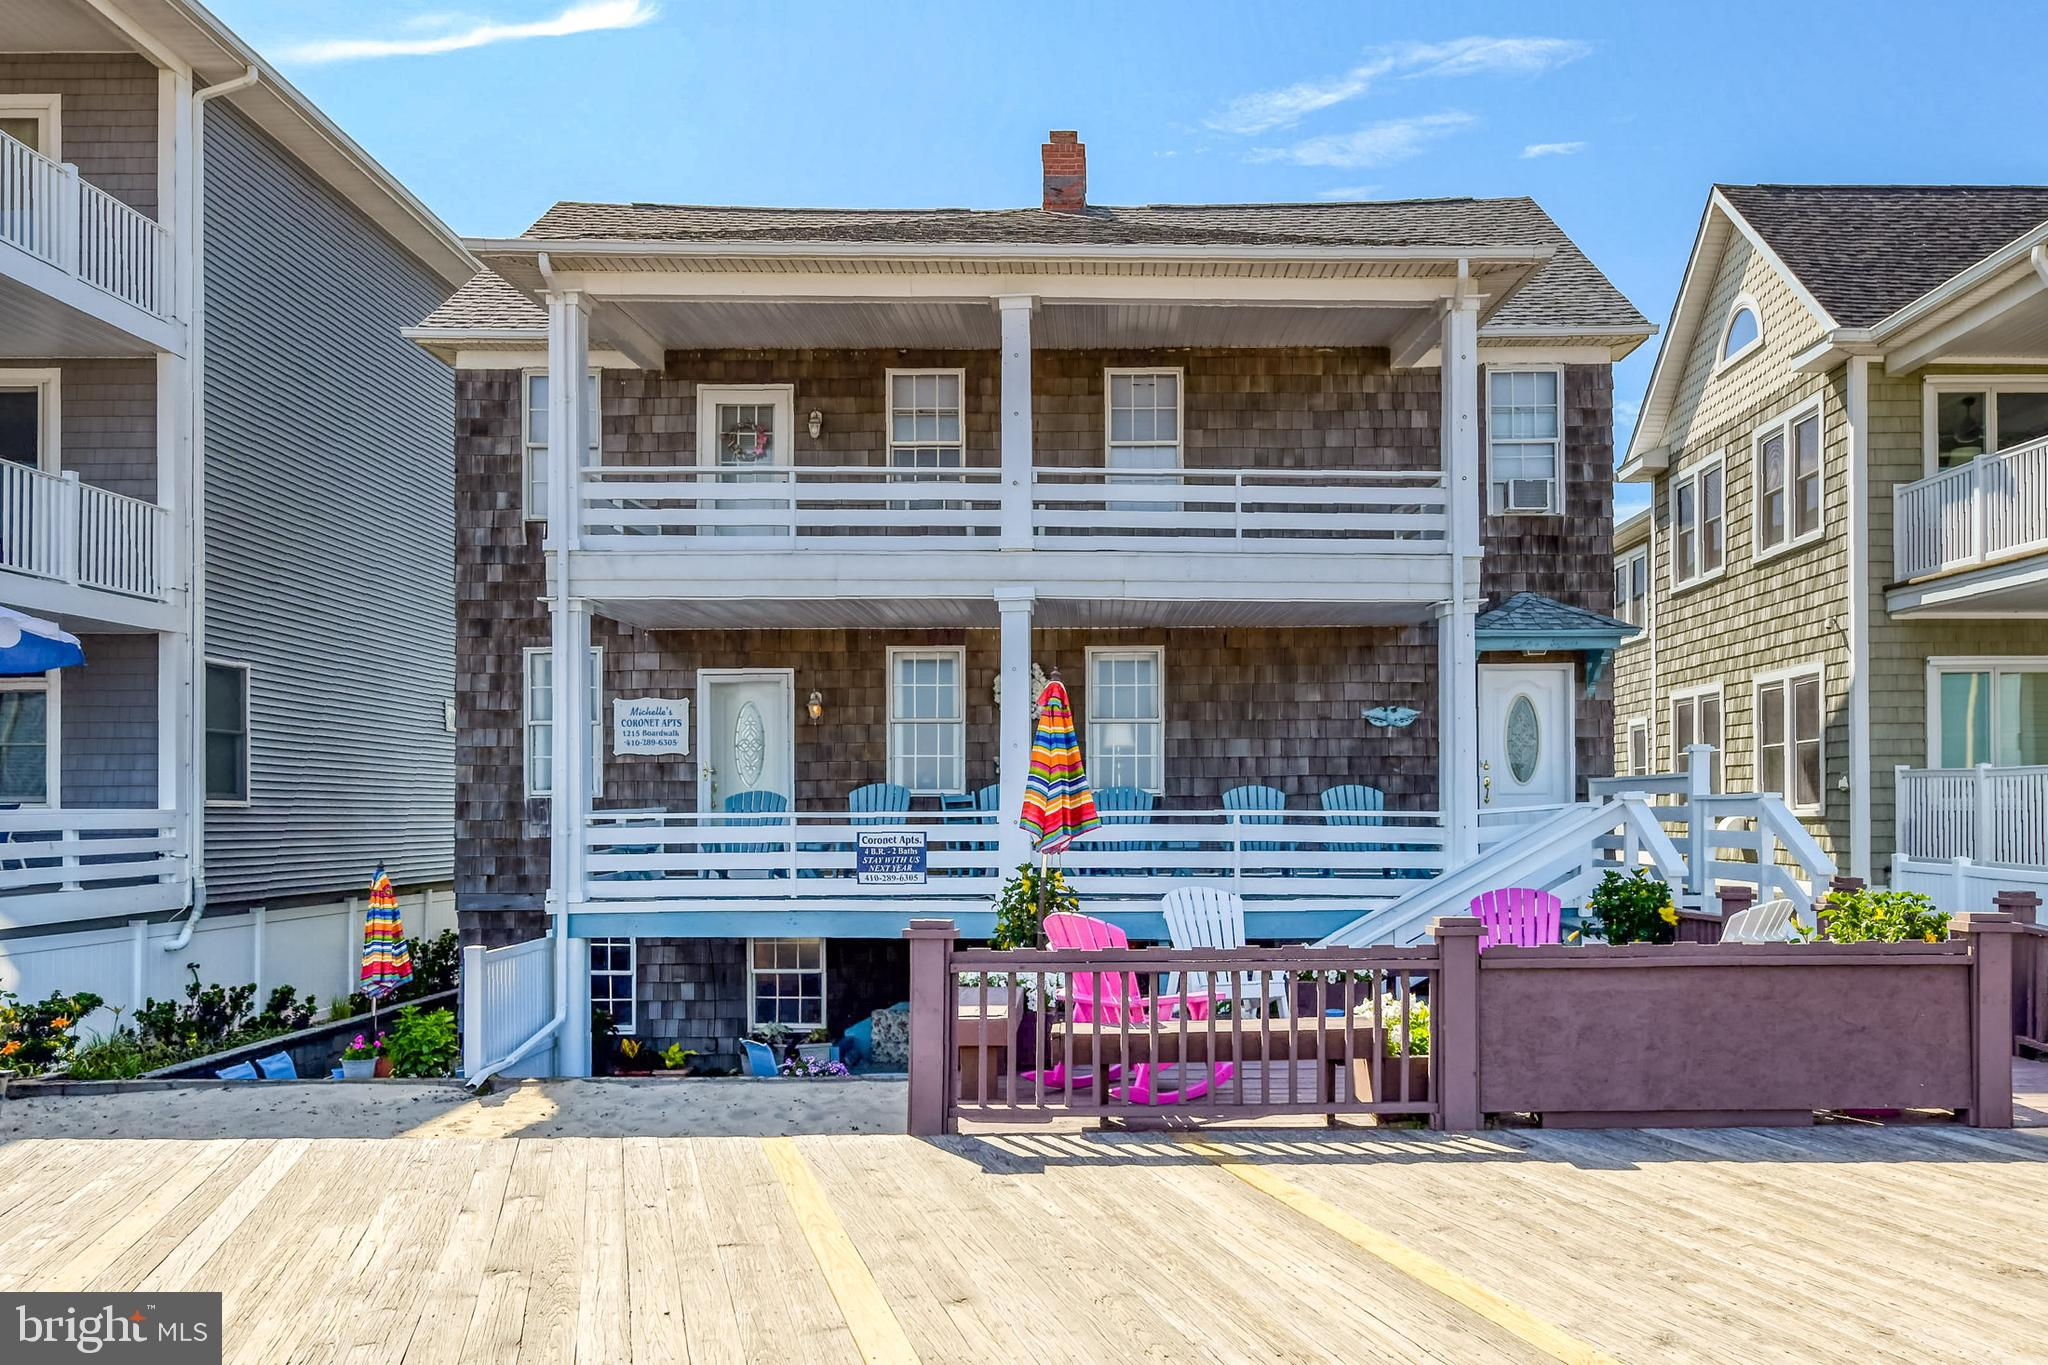 1215 ATLANTIC AVENUE, OCEAN CITY, MD 21842